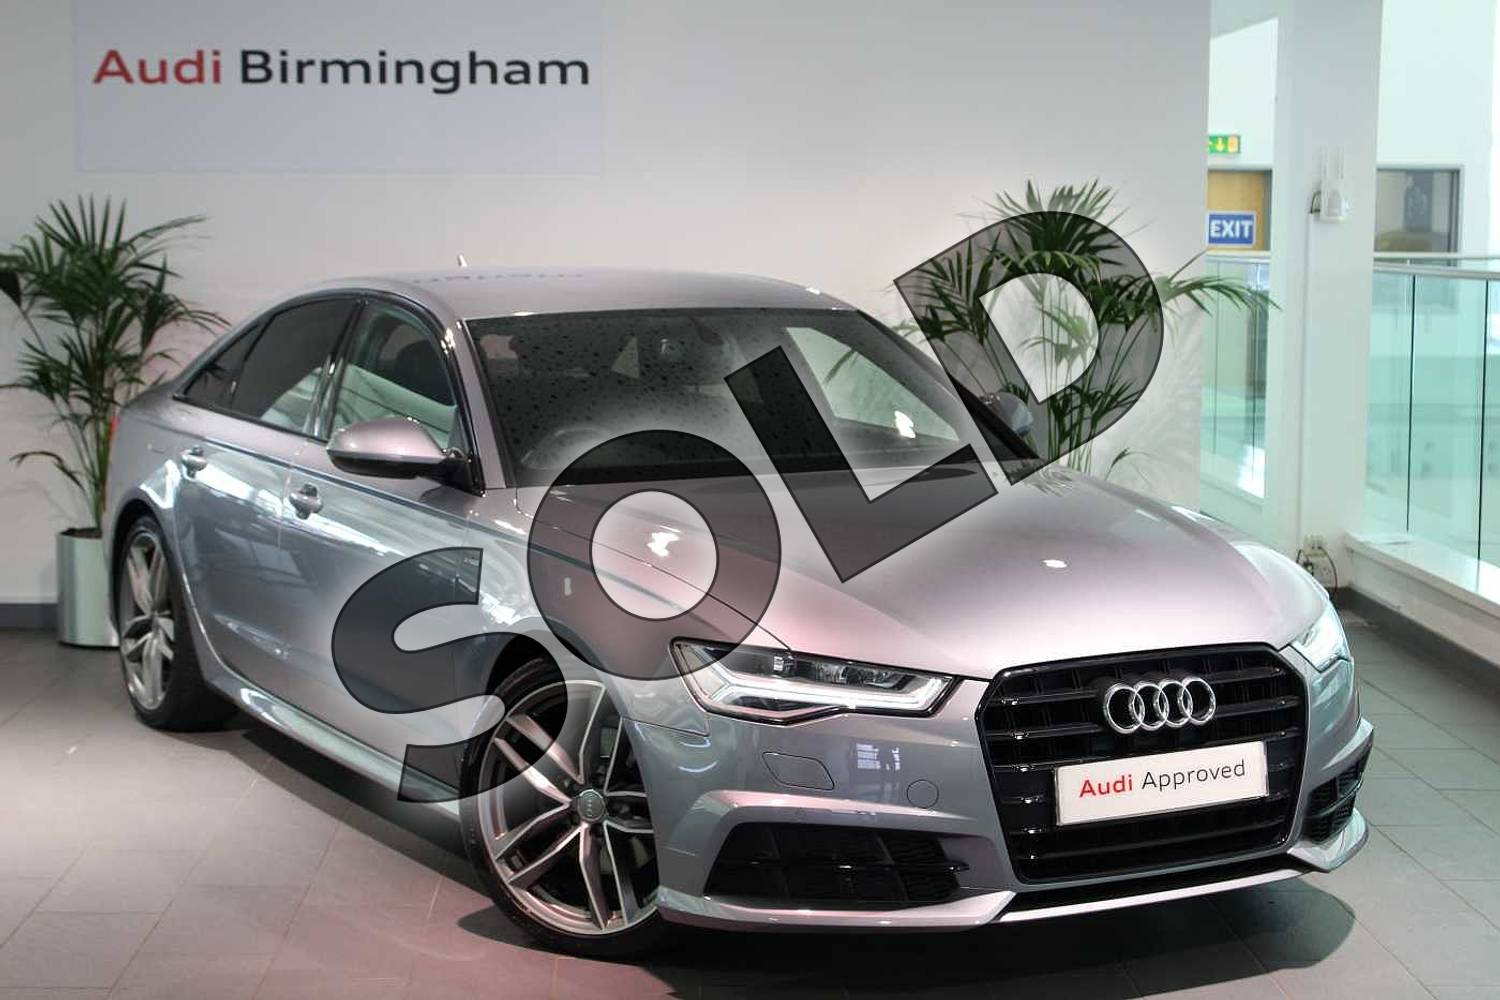 2017 Audi A6 Saloon Special Editions 2.0 TDI Ultra Black Edition 4dr S Tronic in Tornado Grey Metallic at Birmingham Audi